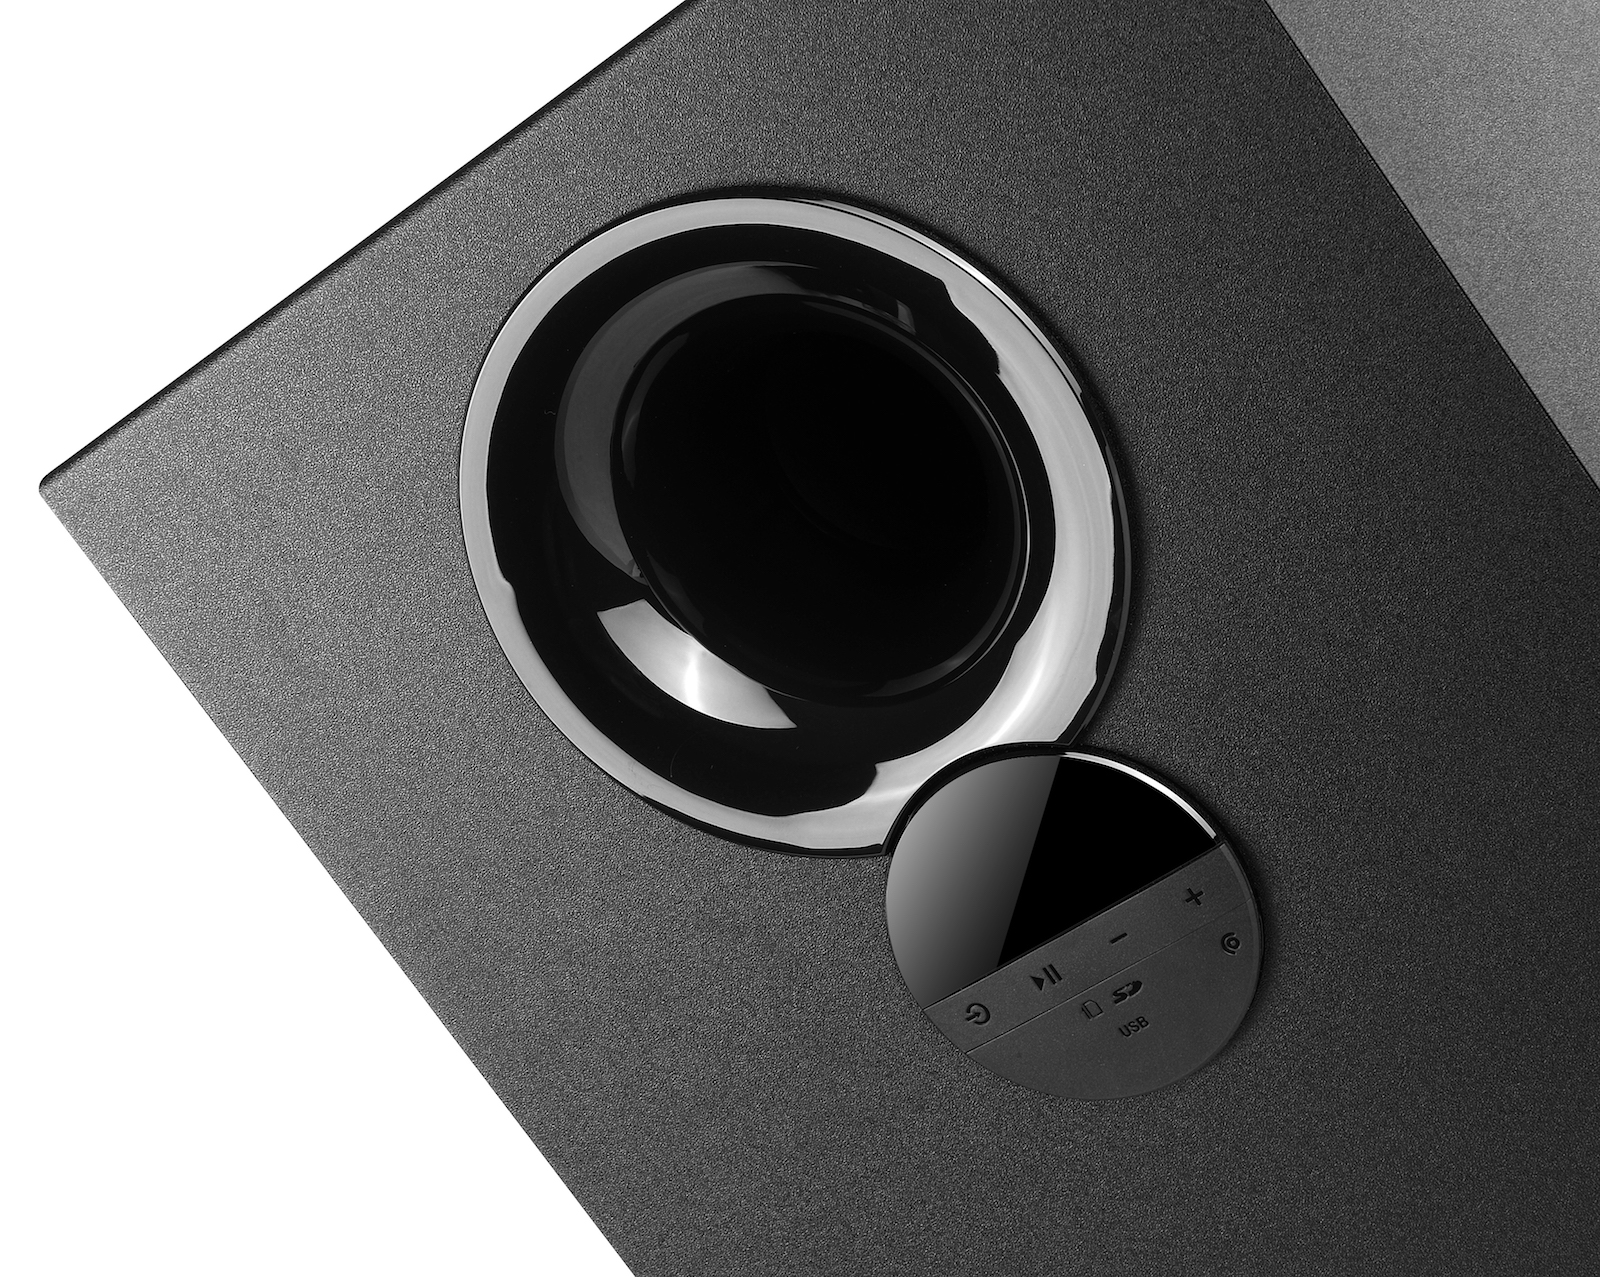 The R501BT is a versatile 5.1 speaker system providing end users with multiple audio input options, coupled with great audio output.